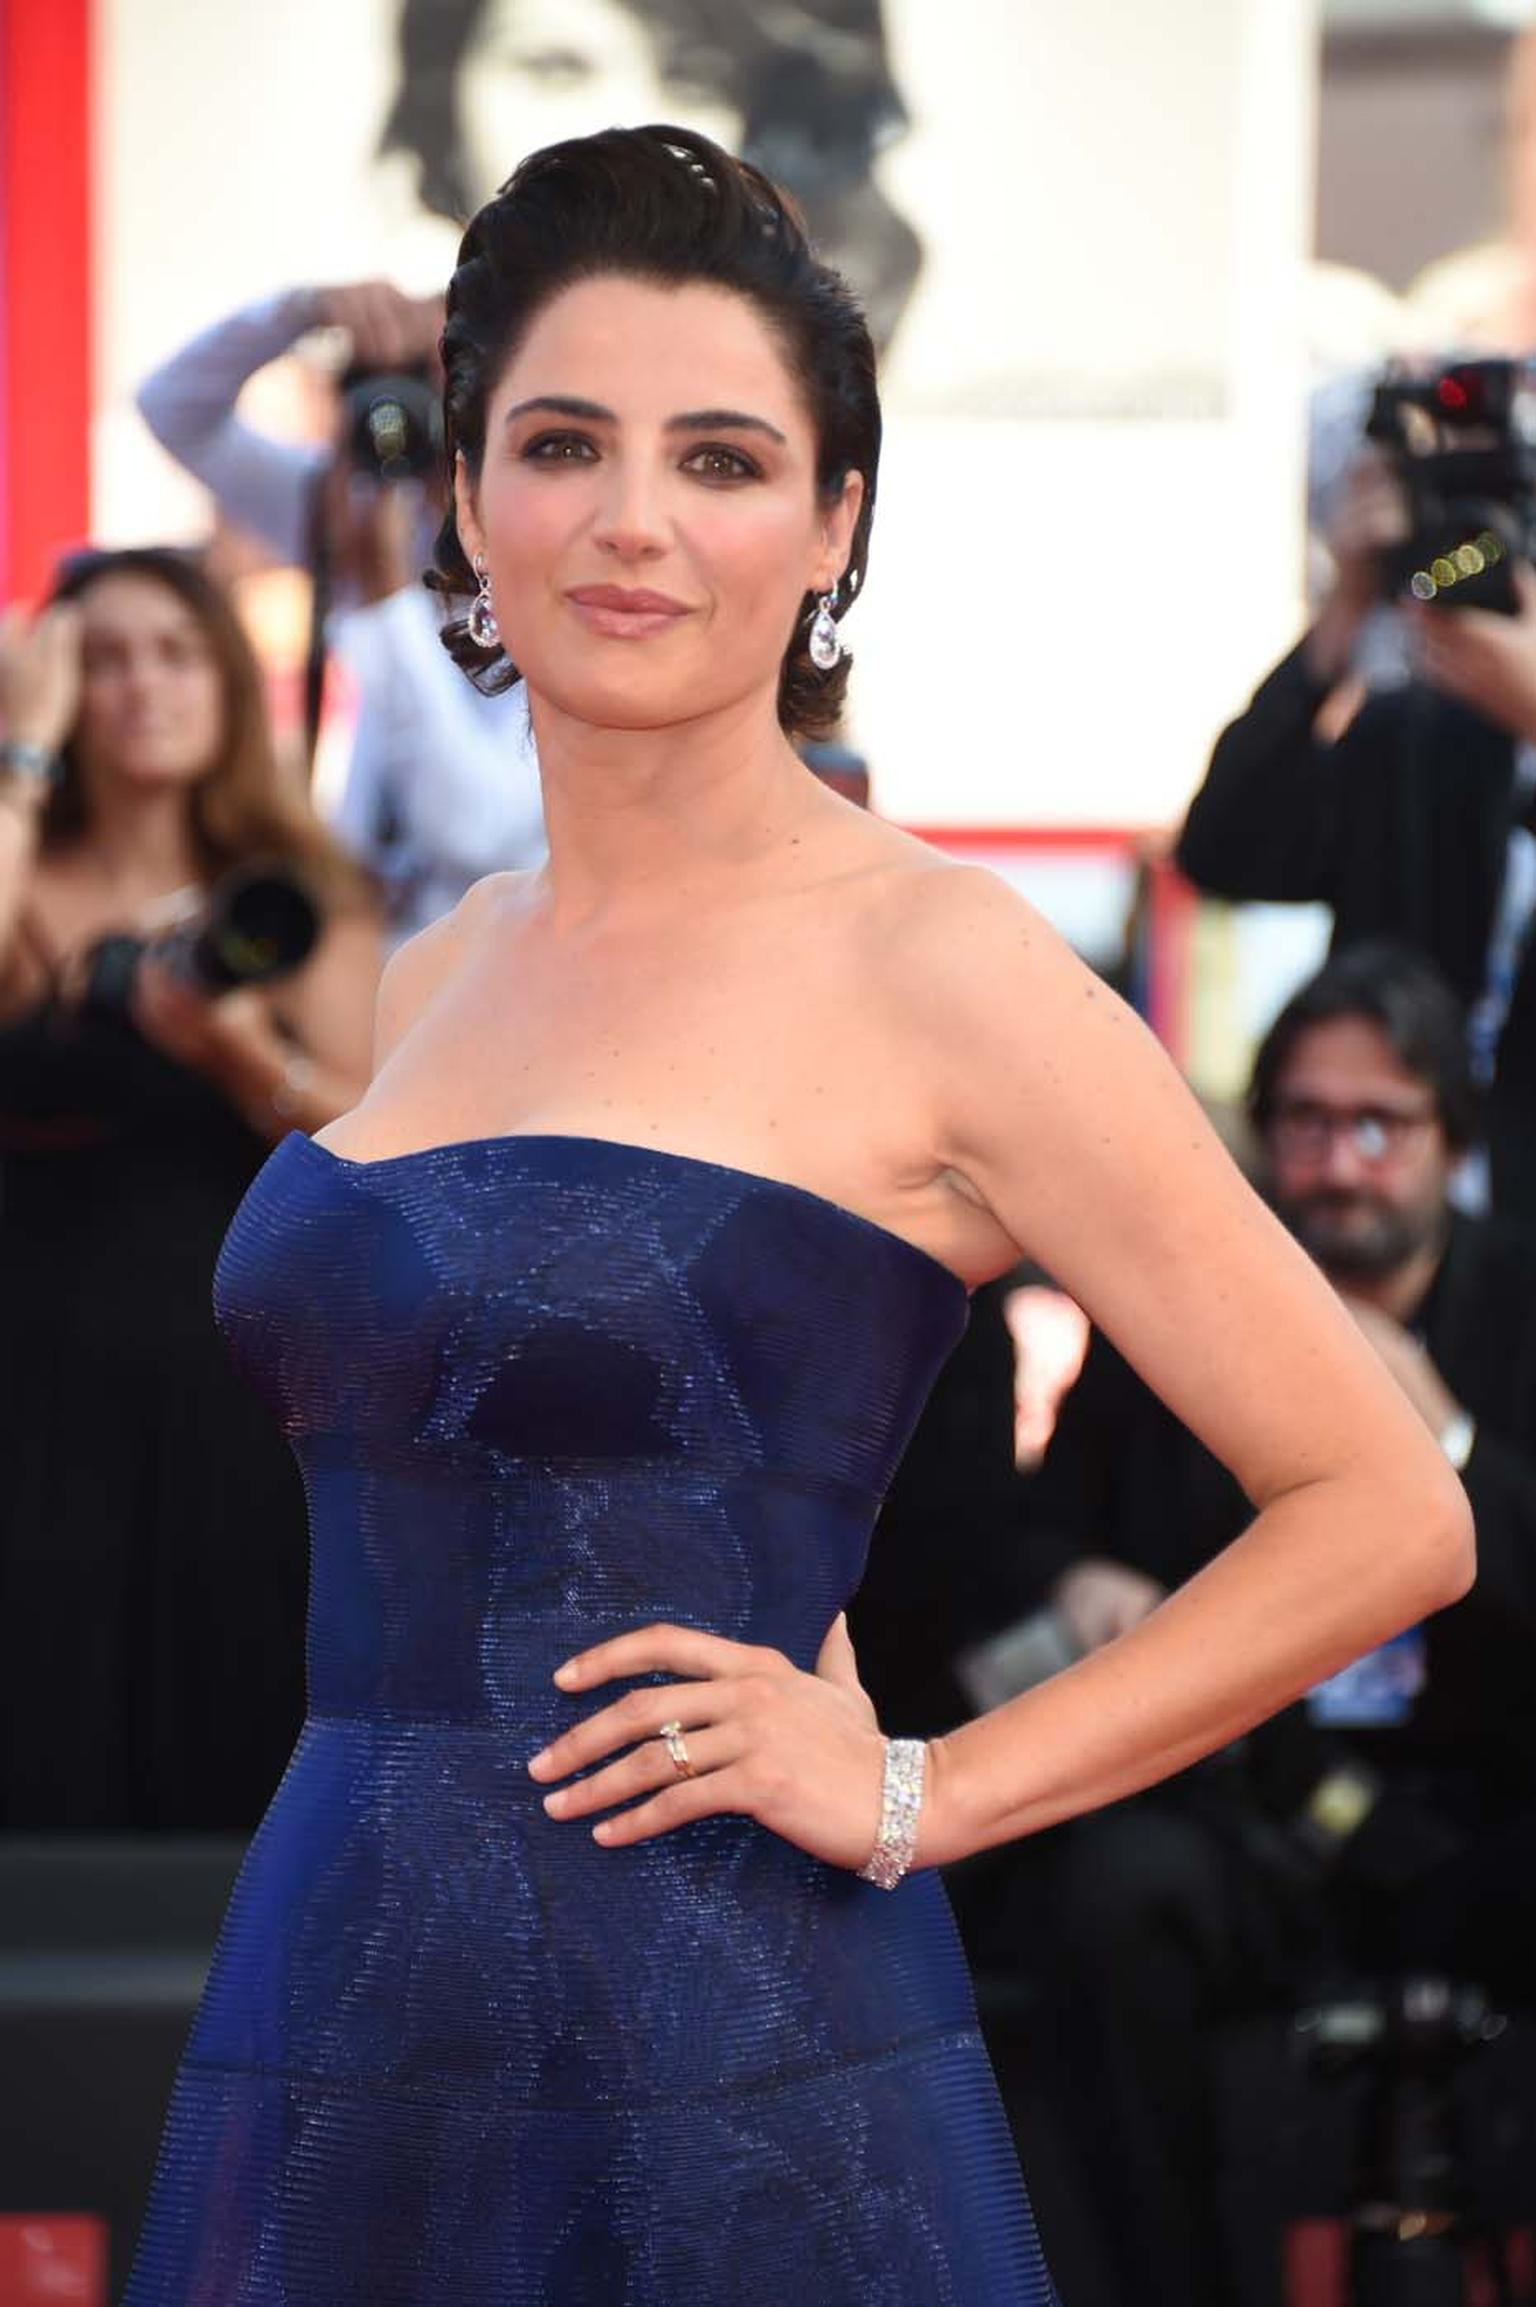 Italian actress and 'Godmother' of the Venice Film Festival Luisa Ranieri wore a pair of Chopard earrings set with 14ct of pear-shaped and brilliant-cut diamonds, a bracelet set with 36ct of fancy-cut diamonds and a diamond Chopard ring.